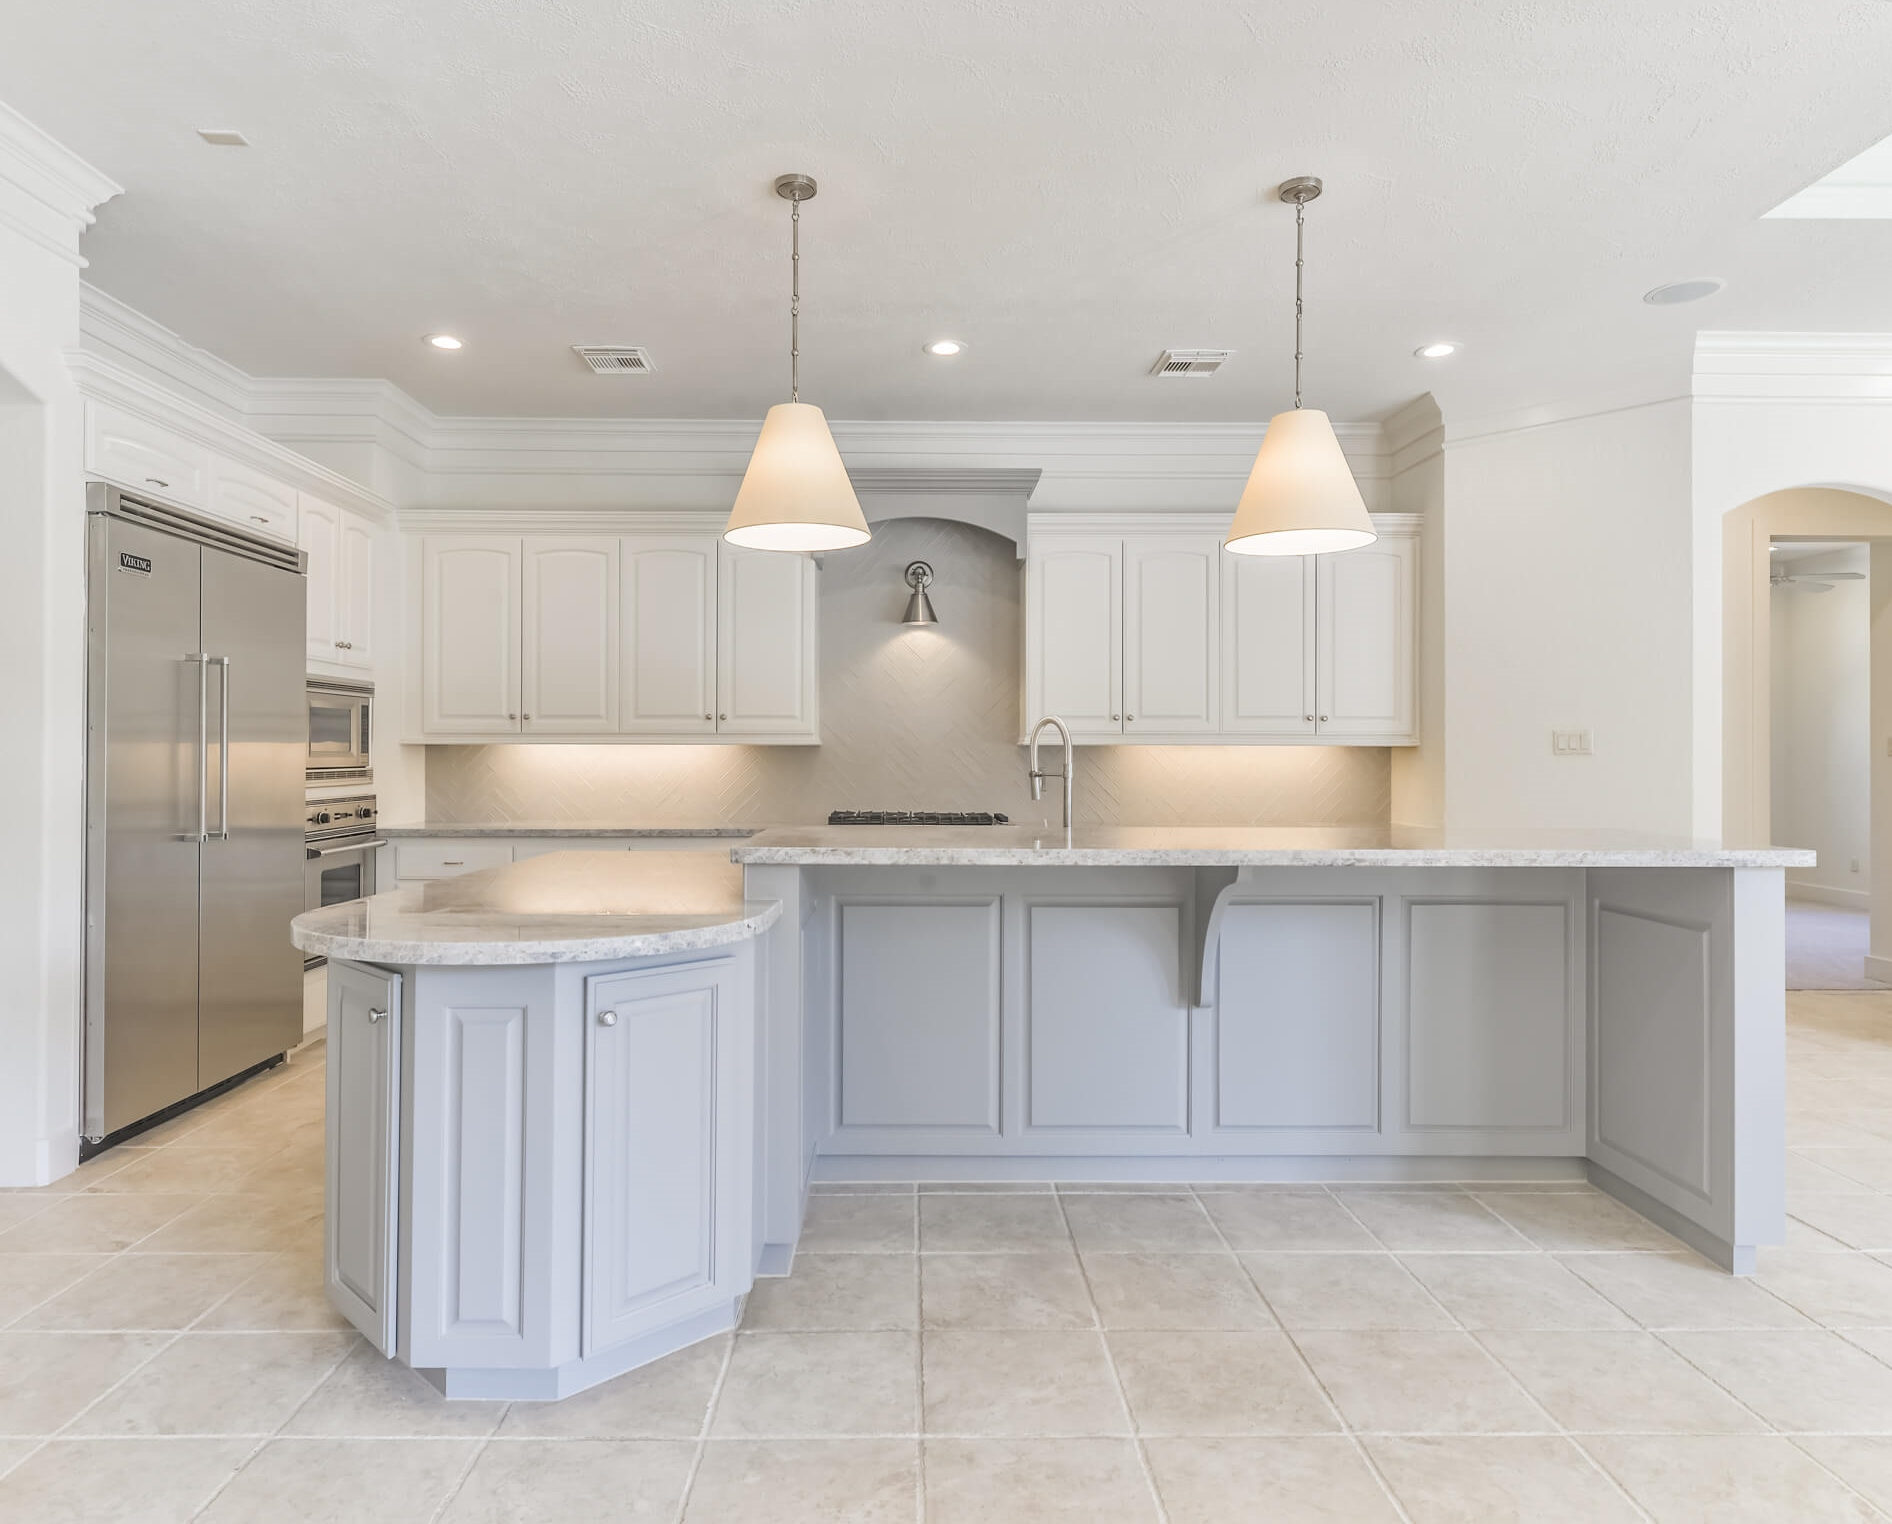 AFTER - Kitchen Remodel in house to sell